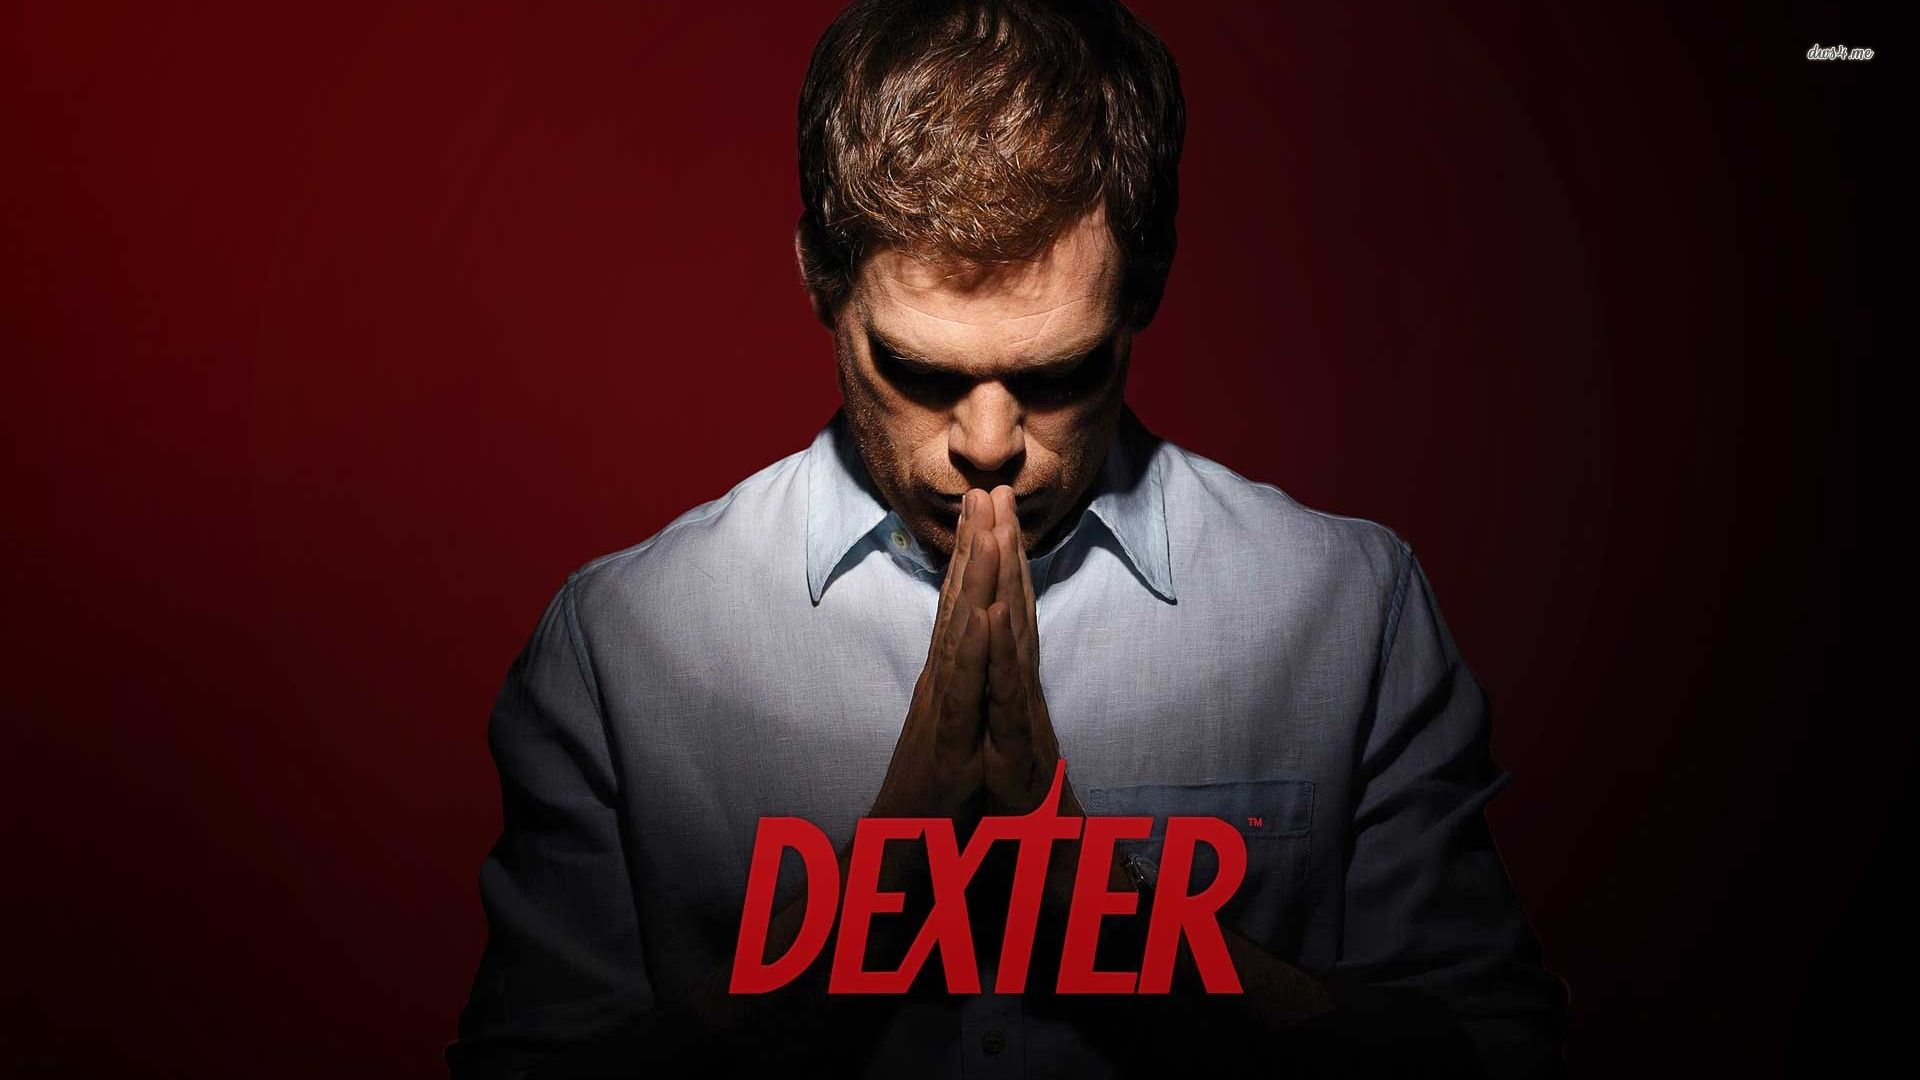 Pin By Antonia King On What I M Watching Dexter Seasons Dexter Wallpaper Dexter